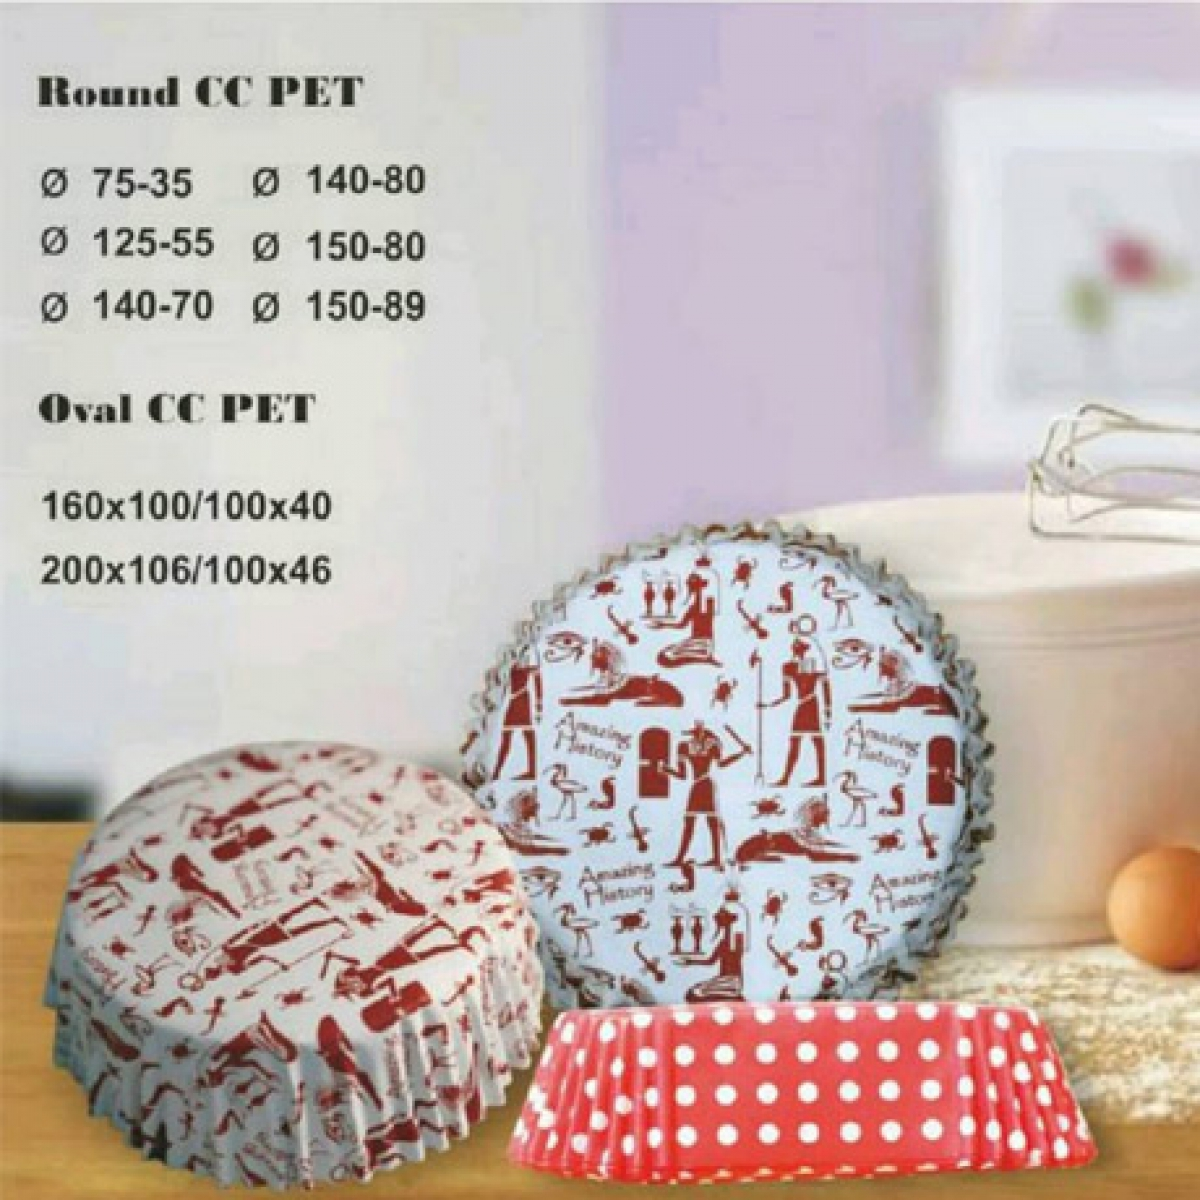 PET cup cake round & oval